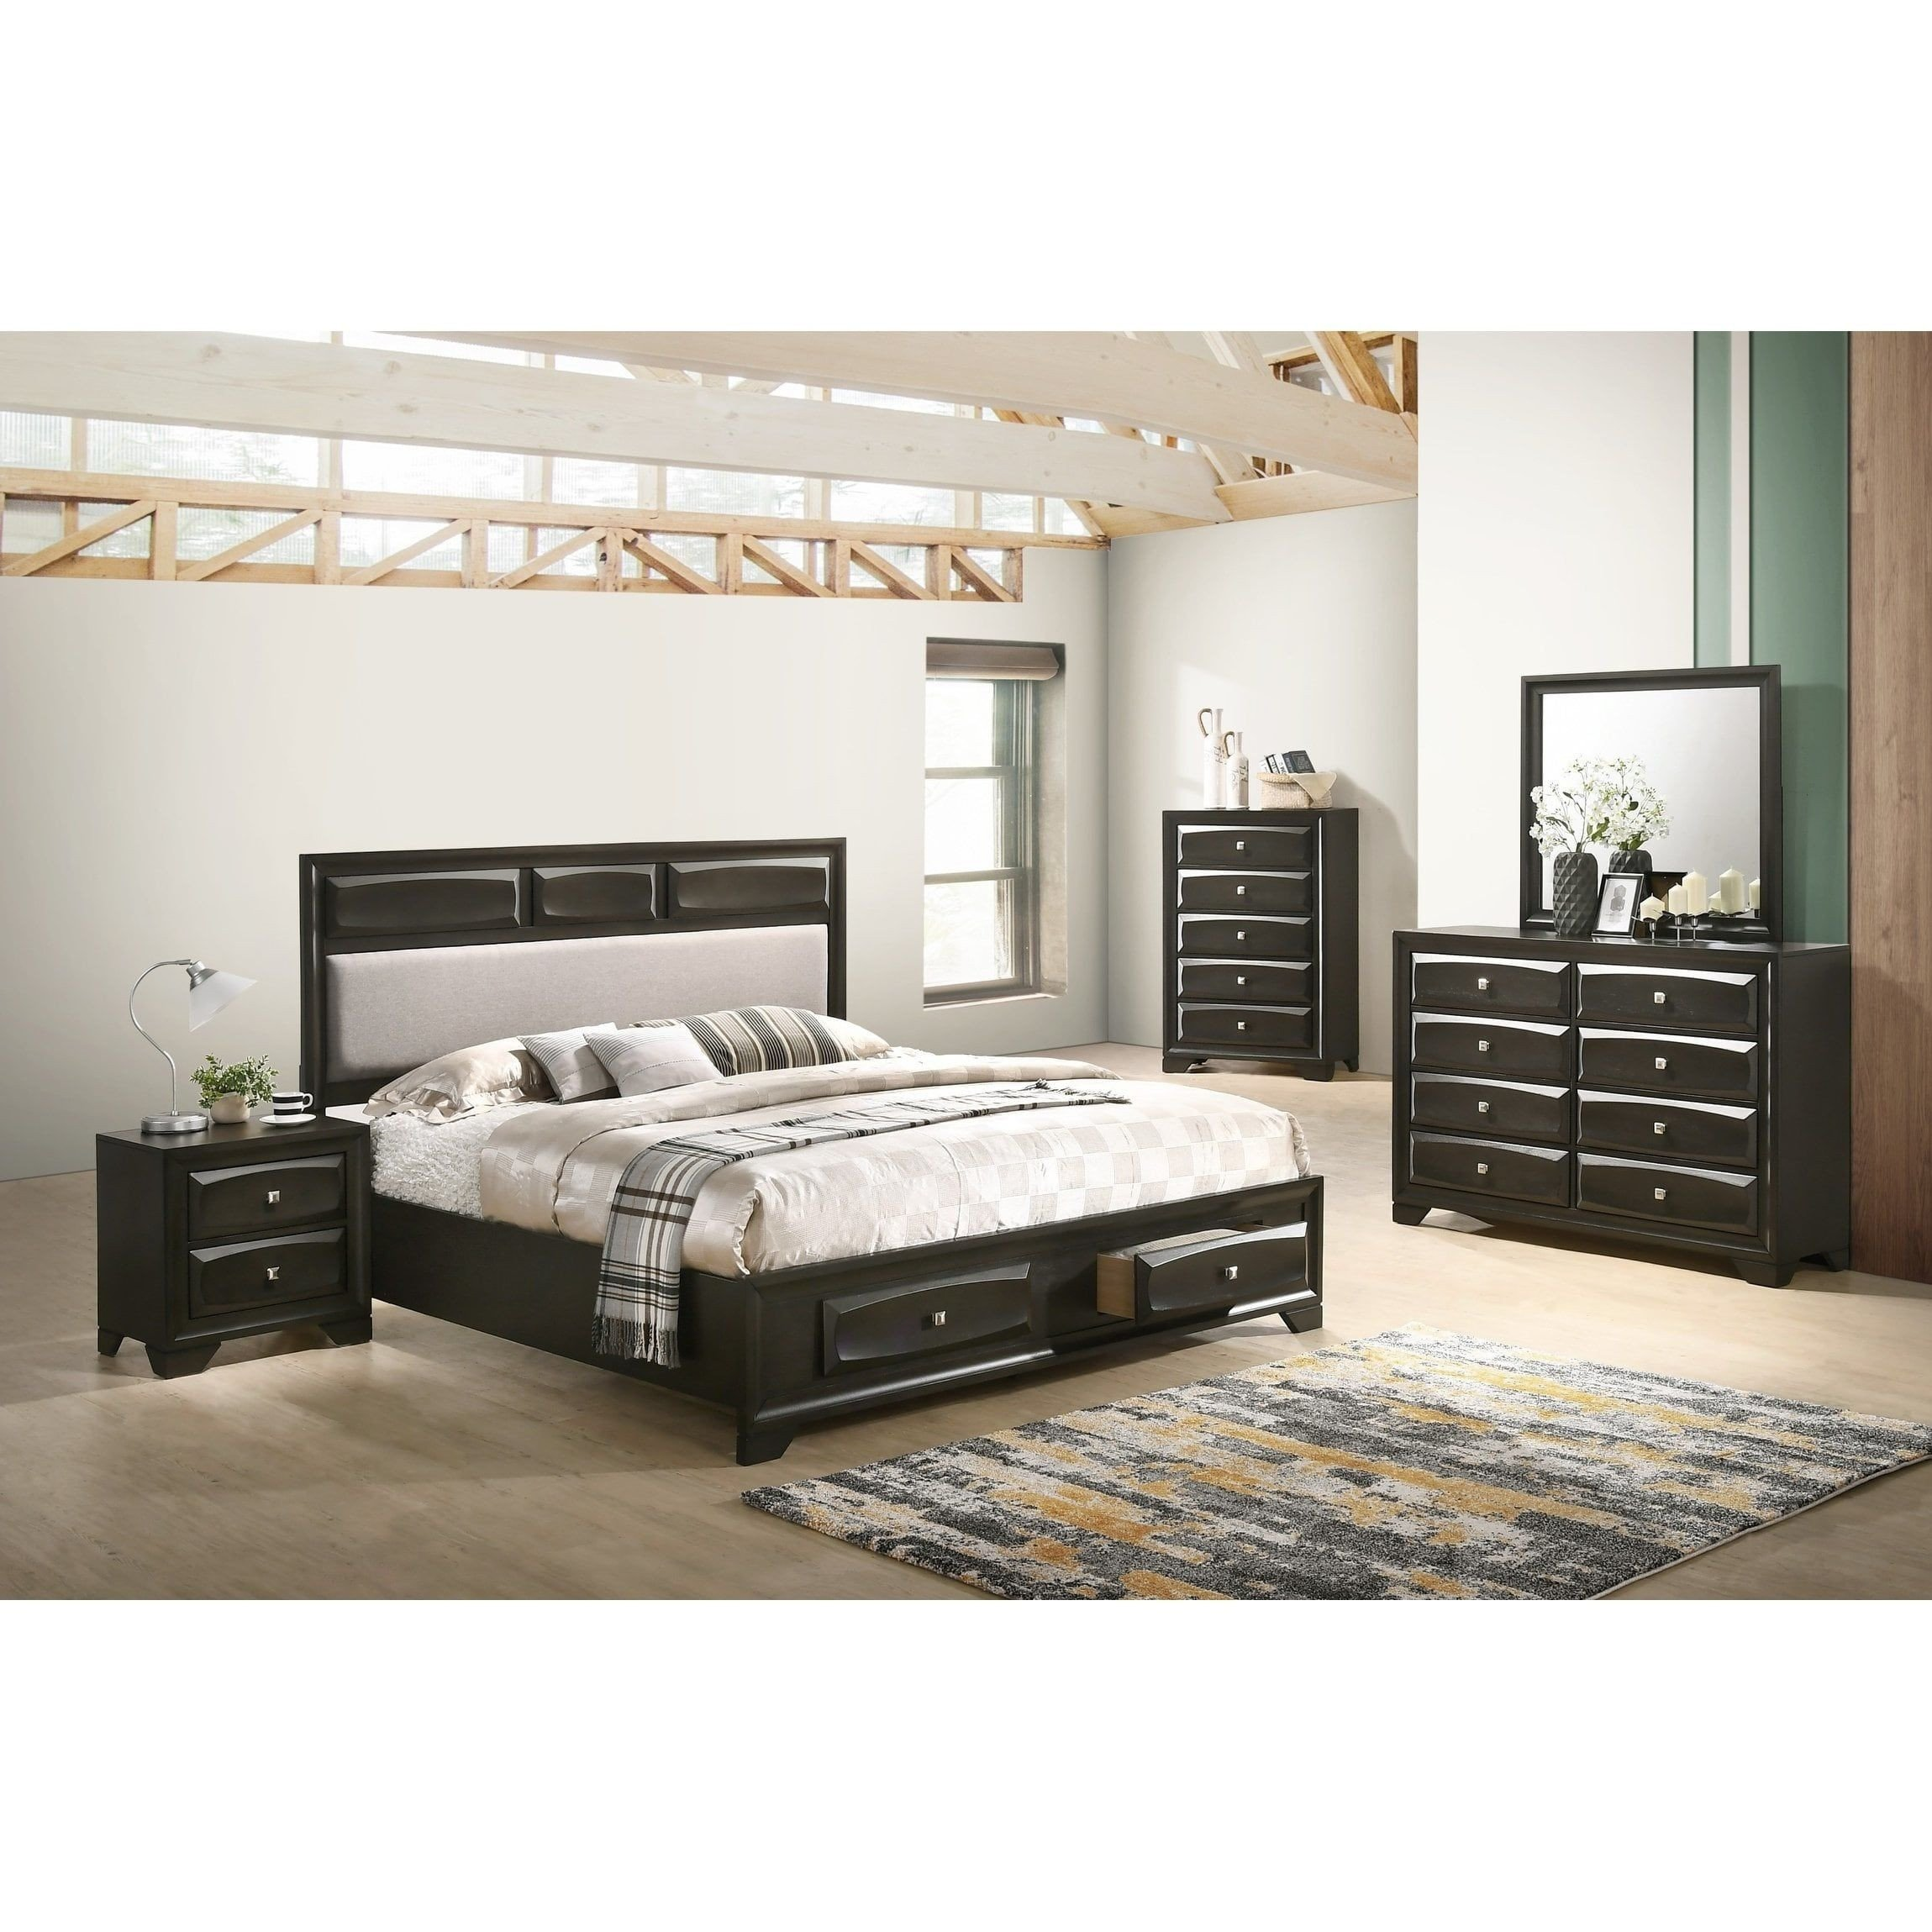 Gray King Bedroom Set Beautiful Oakland Antique Gray Finish Wood 5 Pc King Size Bedroom Set